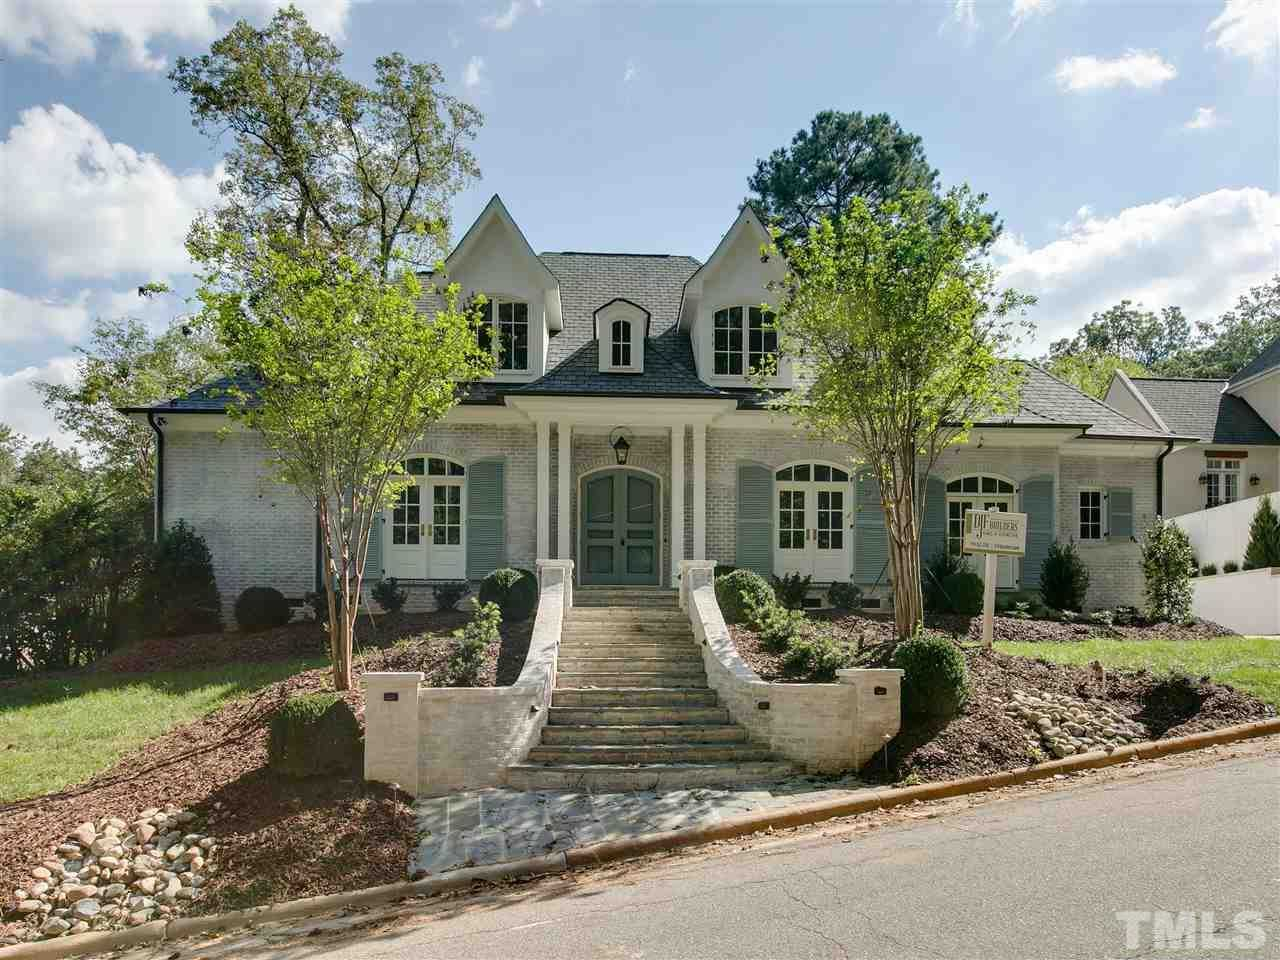 000 Confidential Ave. Raleigh, NC 27609 | MLS 2227136 Photo 1